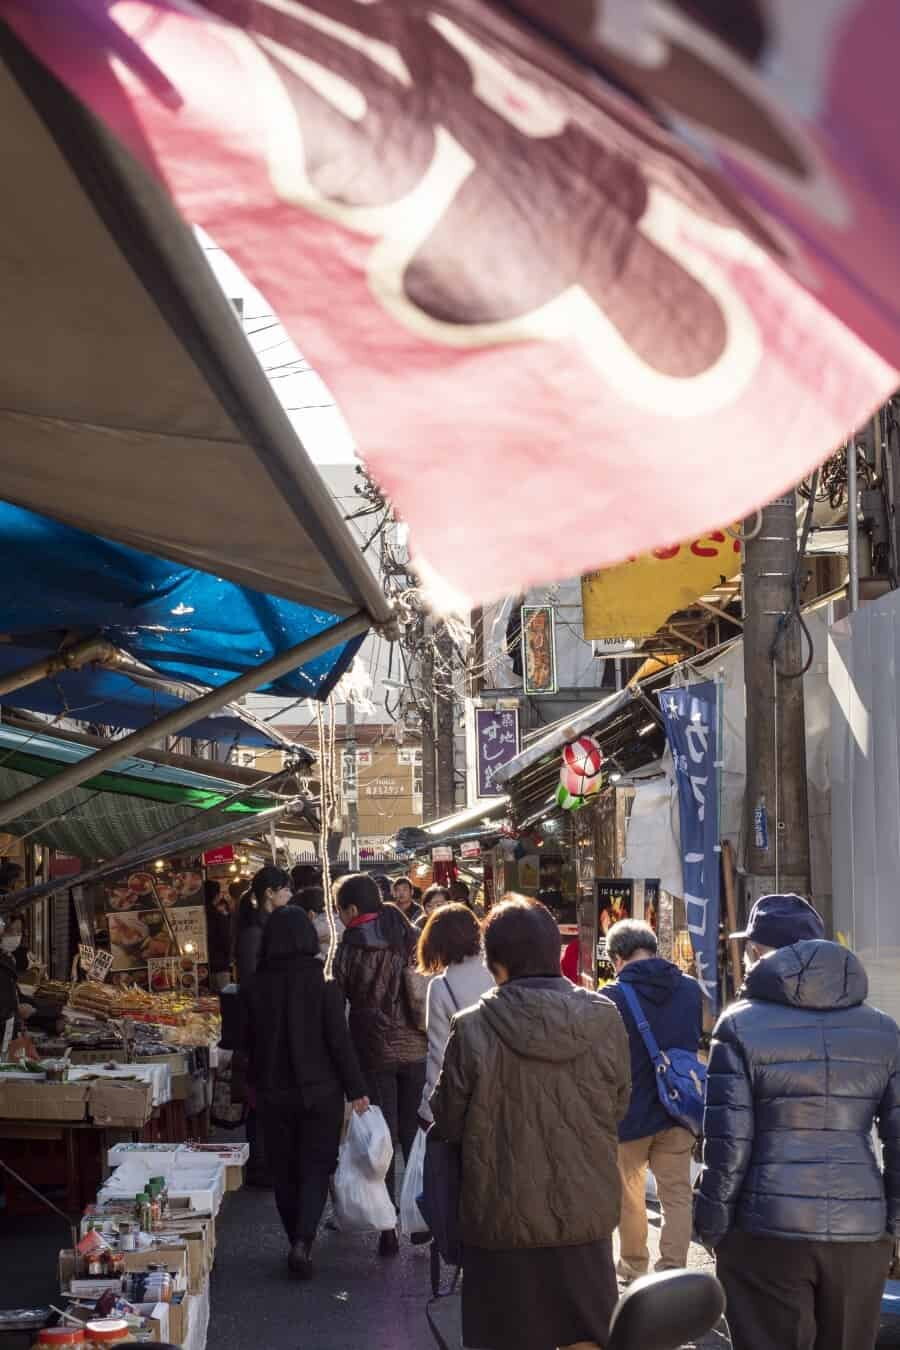 Tsukiji Fish Market, Tokyo Photography Locations - A Photographer's Guide to Photo Spots in Tokyo